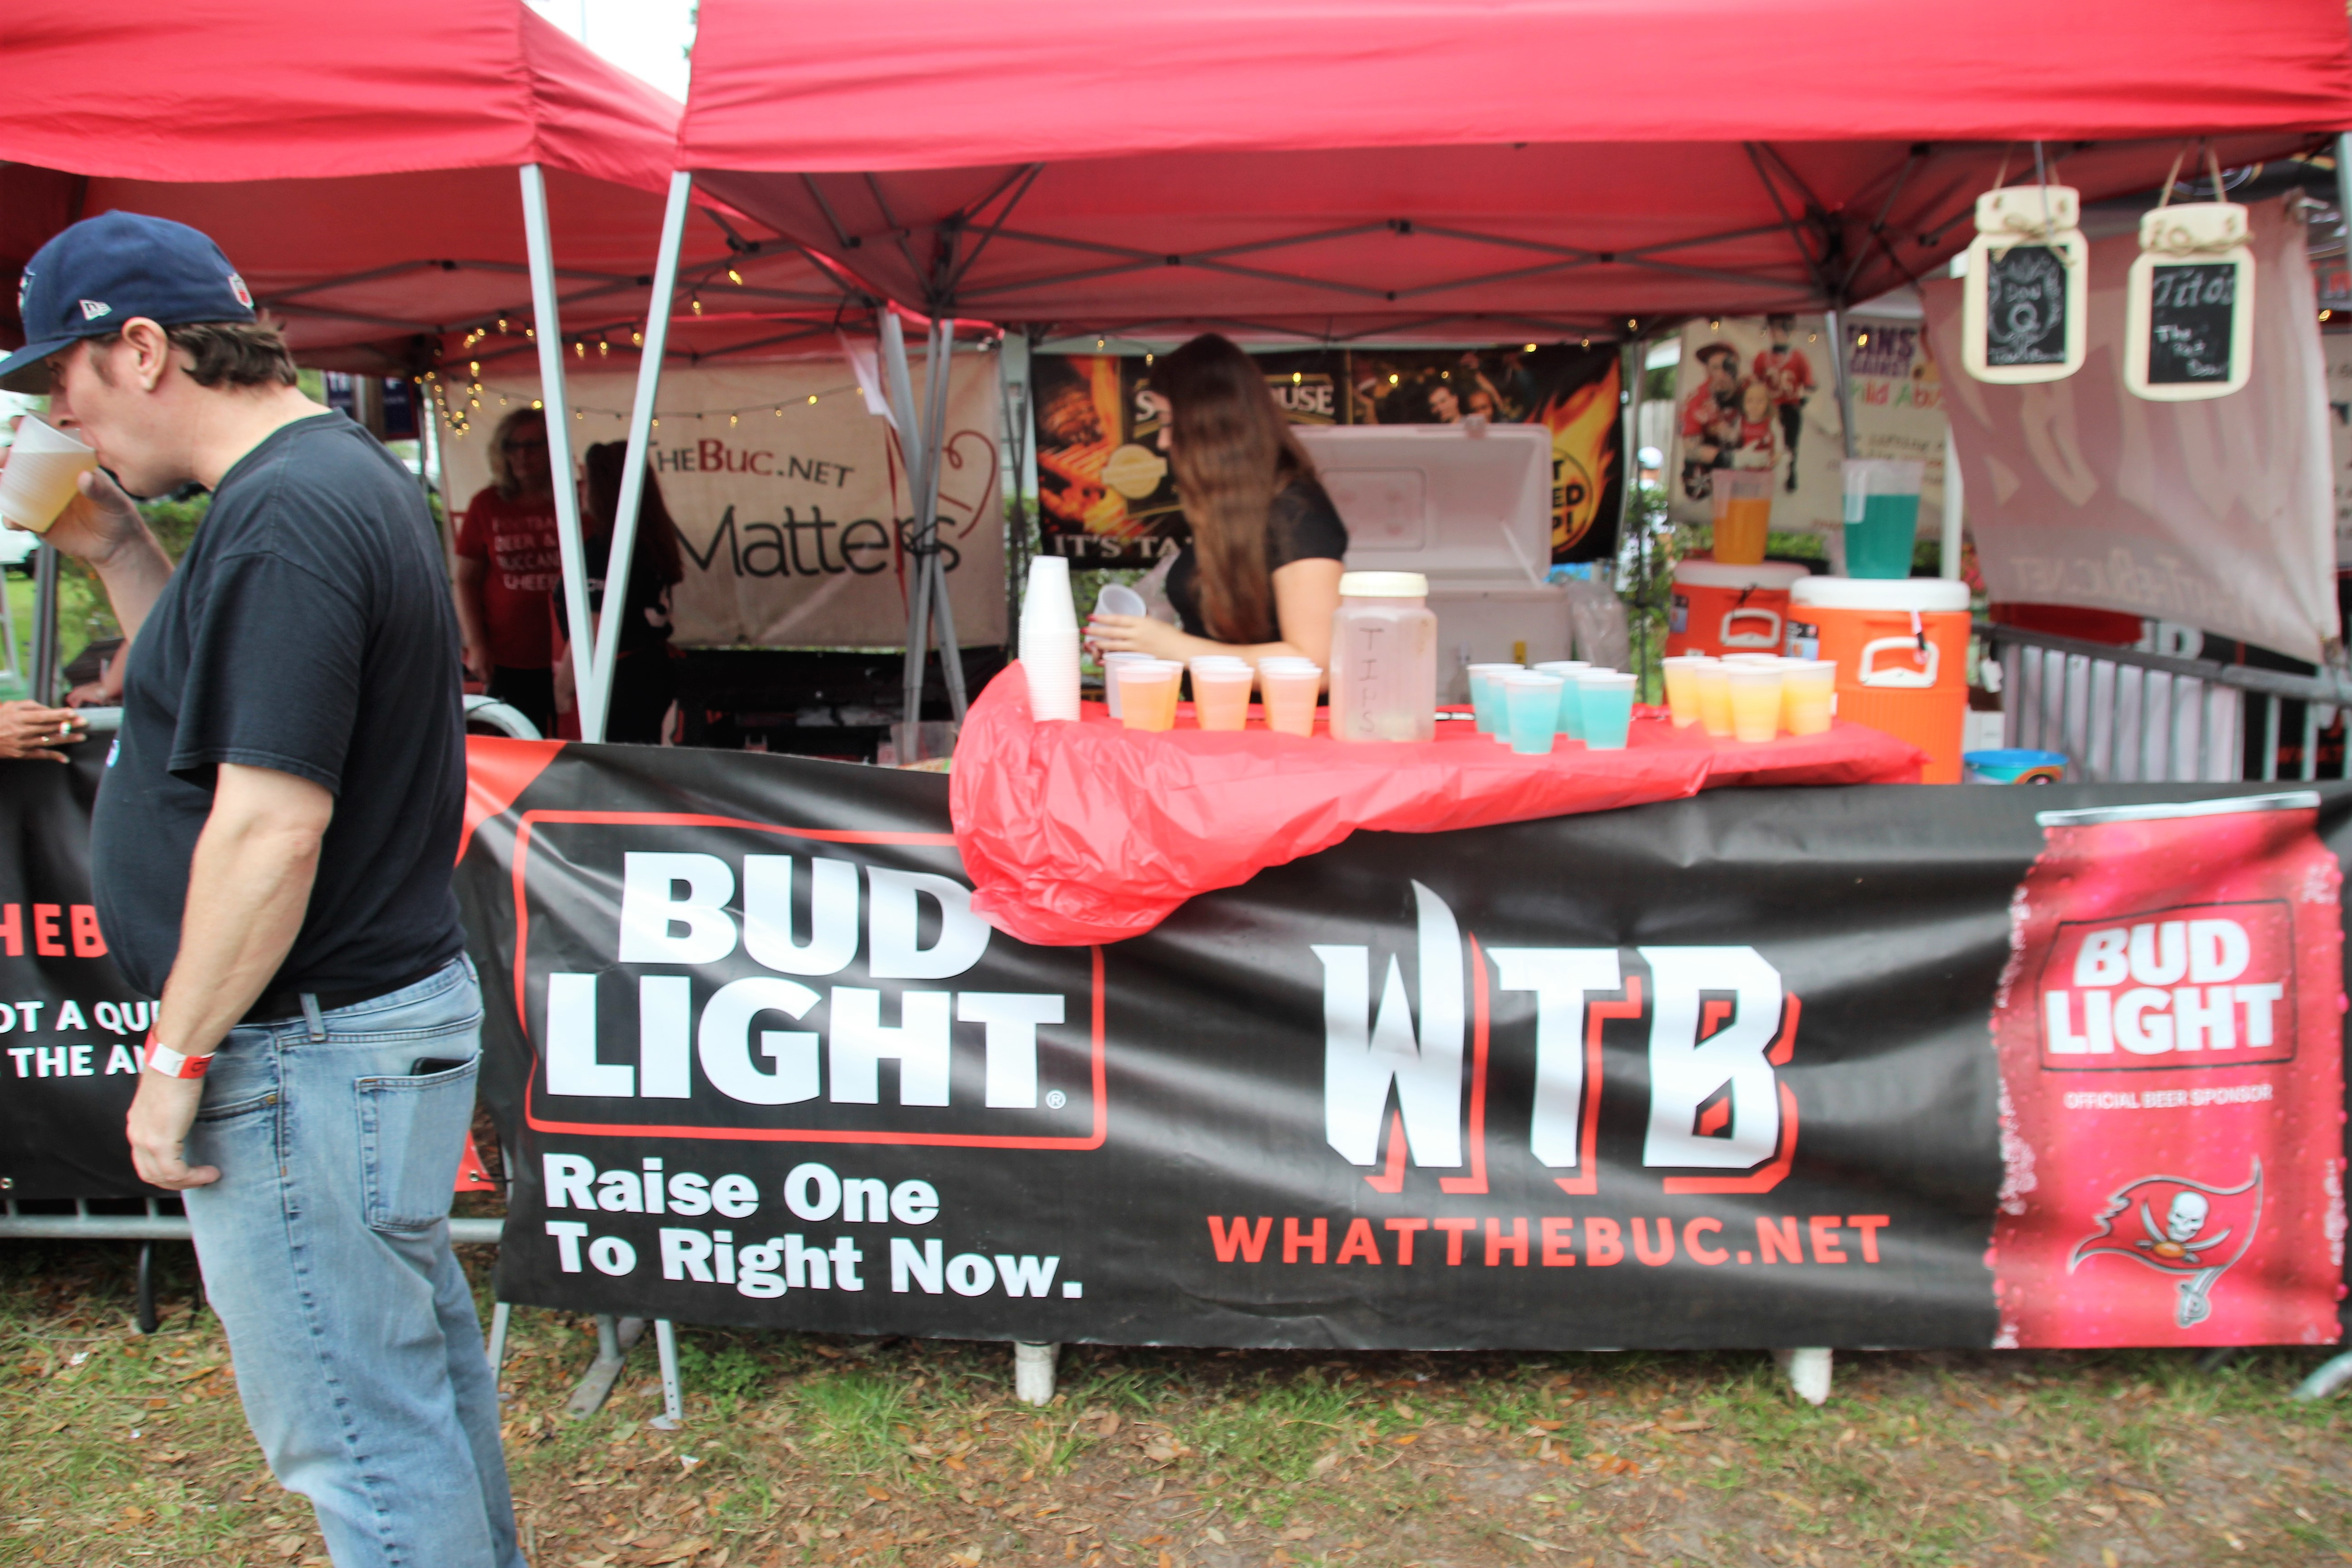 WTB - Bucs versus Patriots Tailgate & 91st Consecutive Tailgate: Pats versus Bucs - What The Buc?